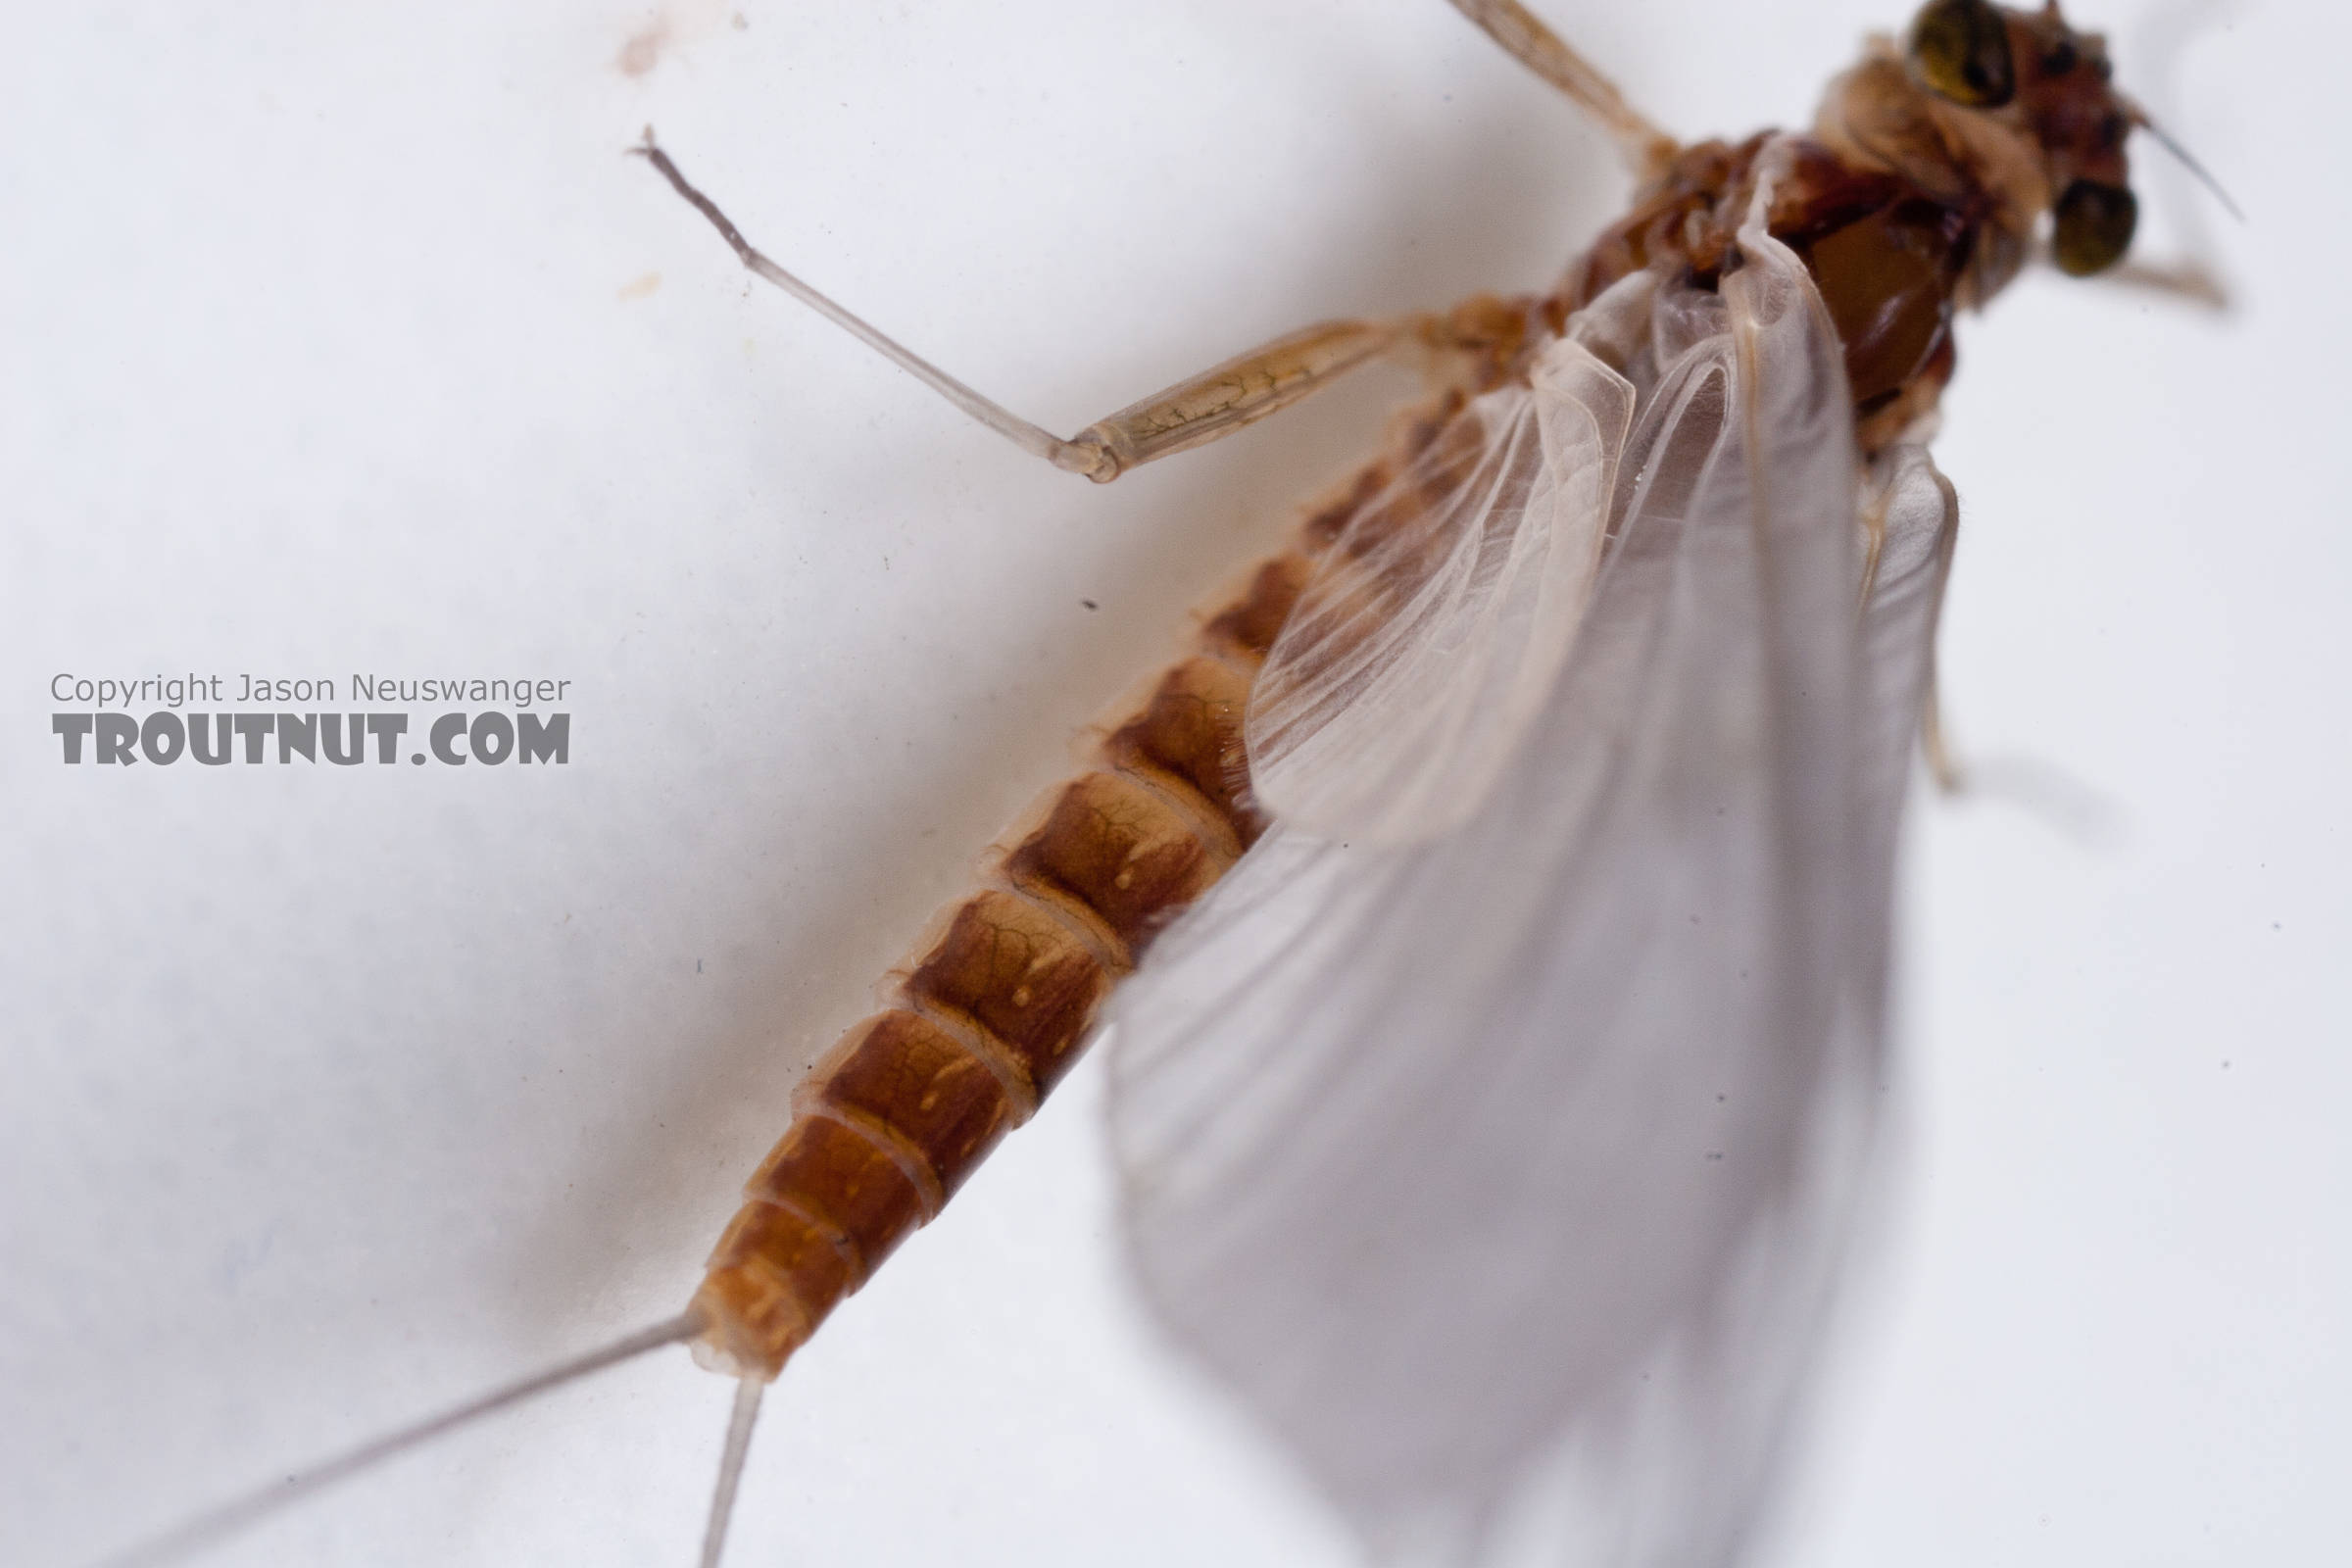 Female Cinygmula ramaleyi (Small Western Gordon Quill) Mayfly Dun from Nome Creek in Alaska